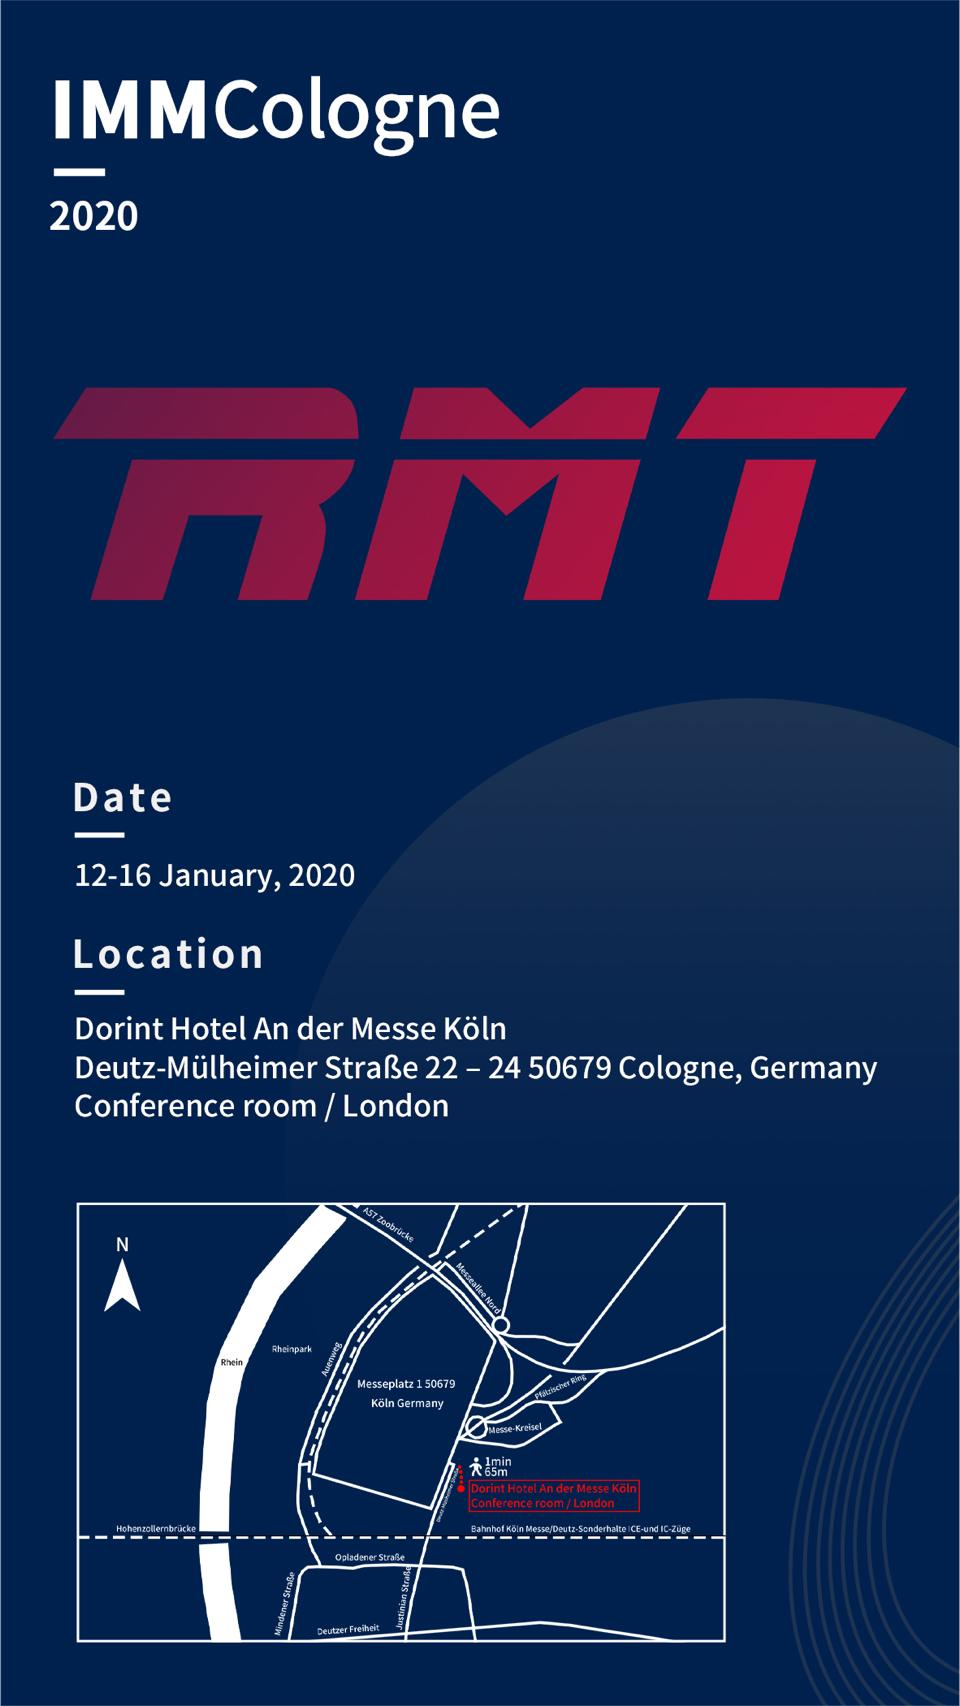 RMT at the DORINT HOTEL FOR 2020 IMM IN COLOGNE